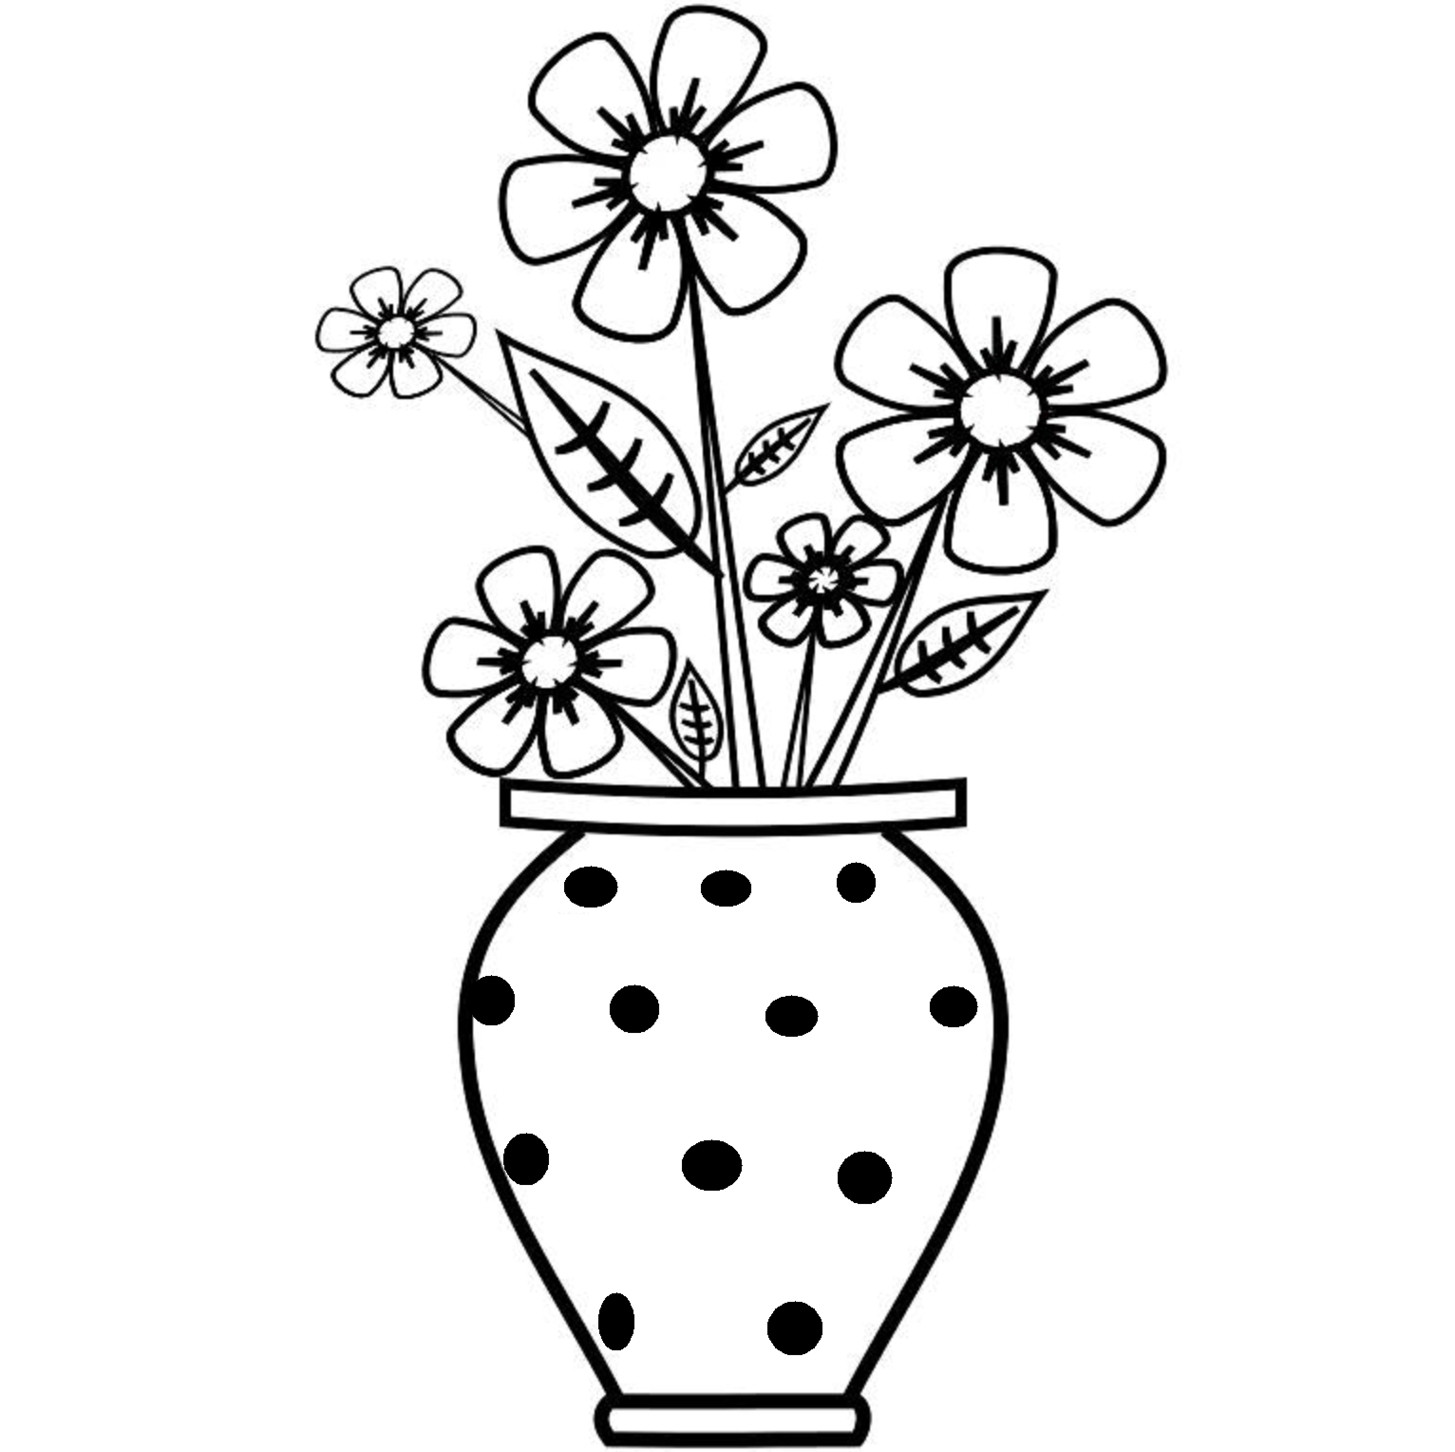 how to draw a vase with flowers step by step bunch of flowers in a vase stock illustration step by vase draw step how flowers to a with